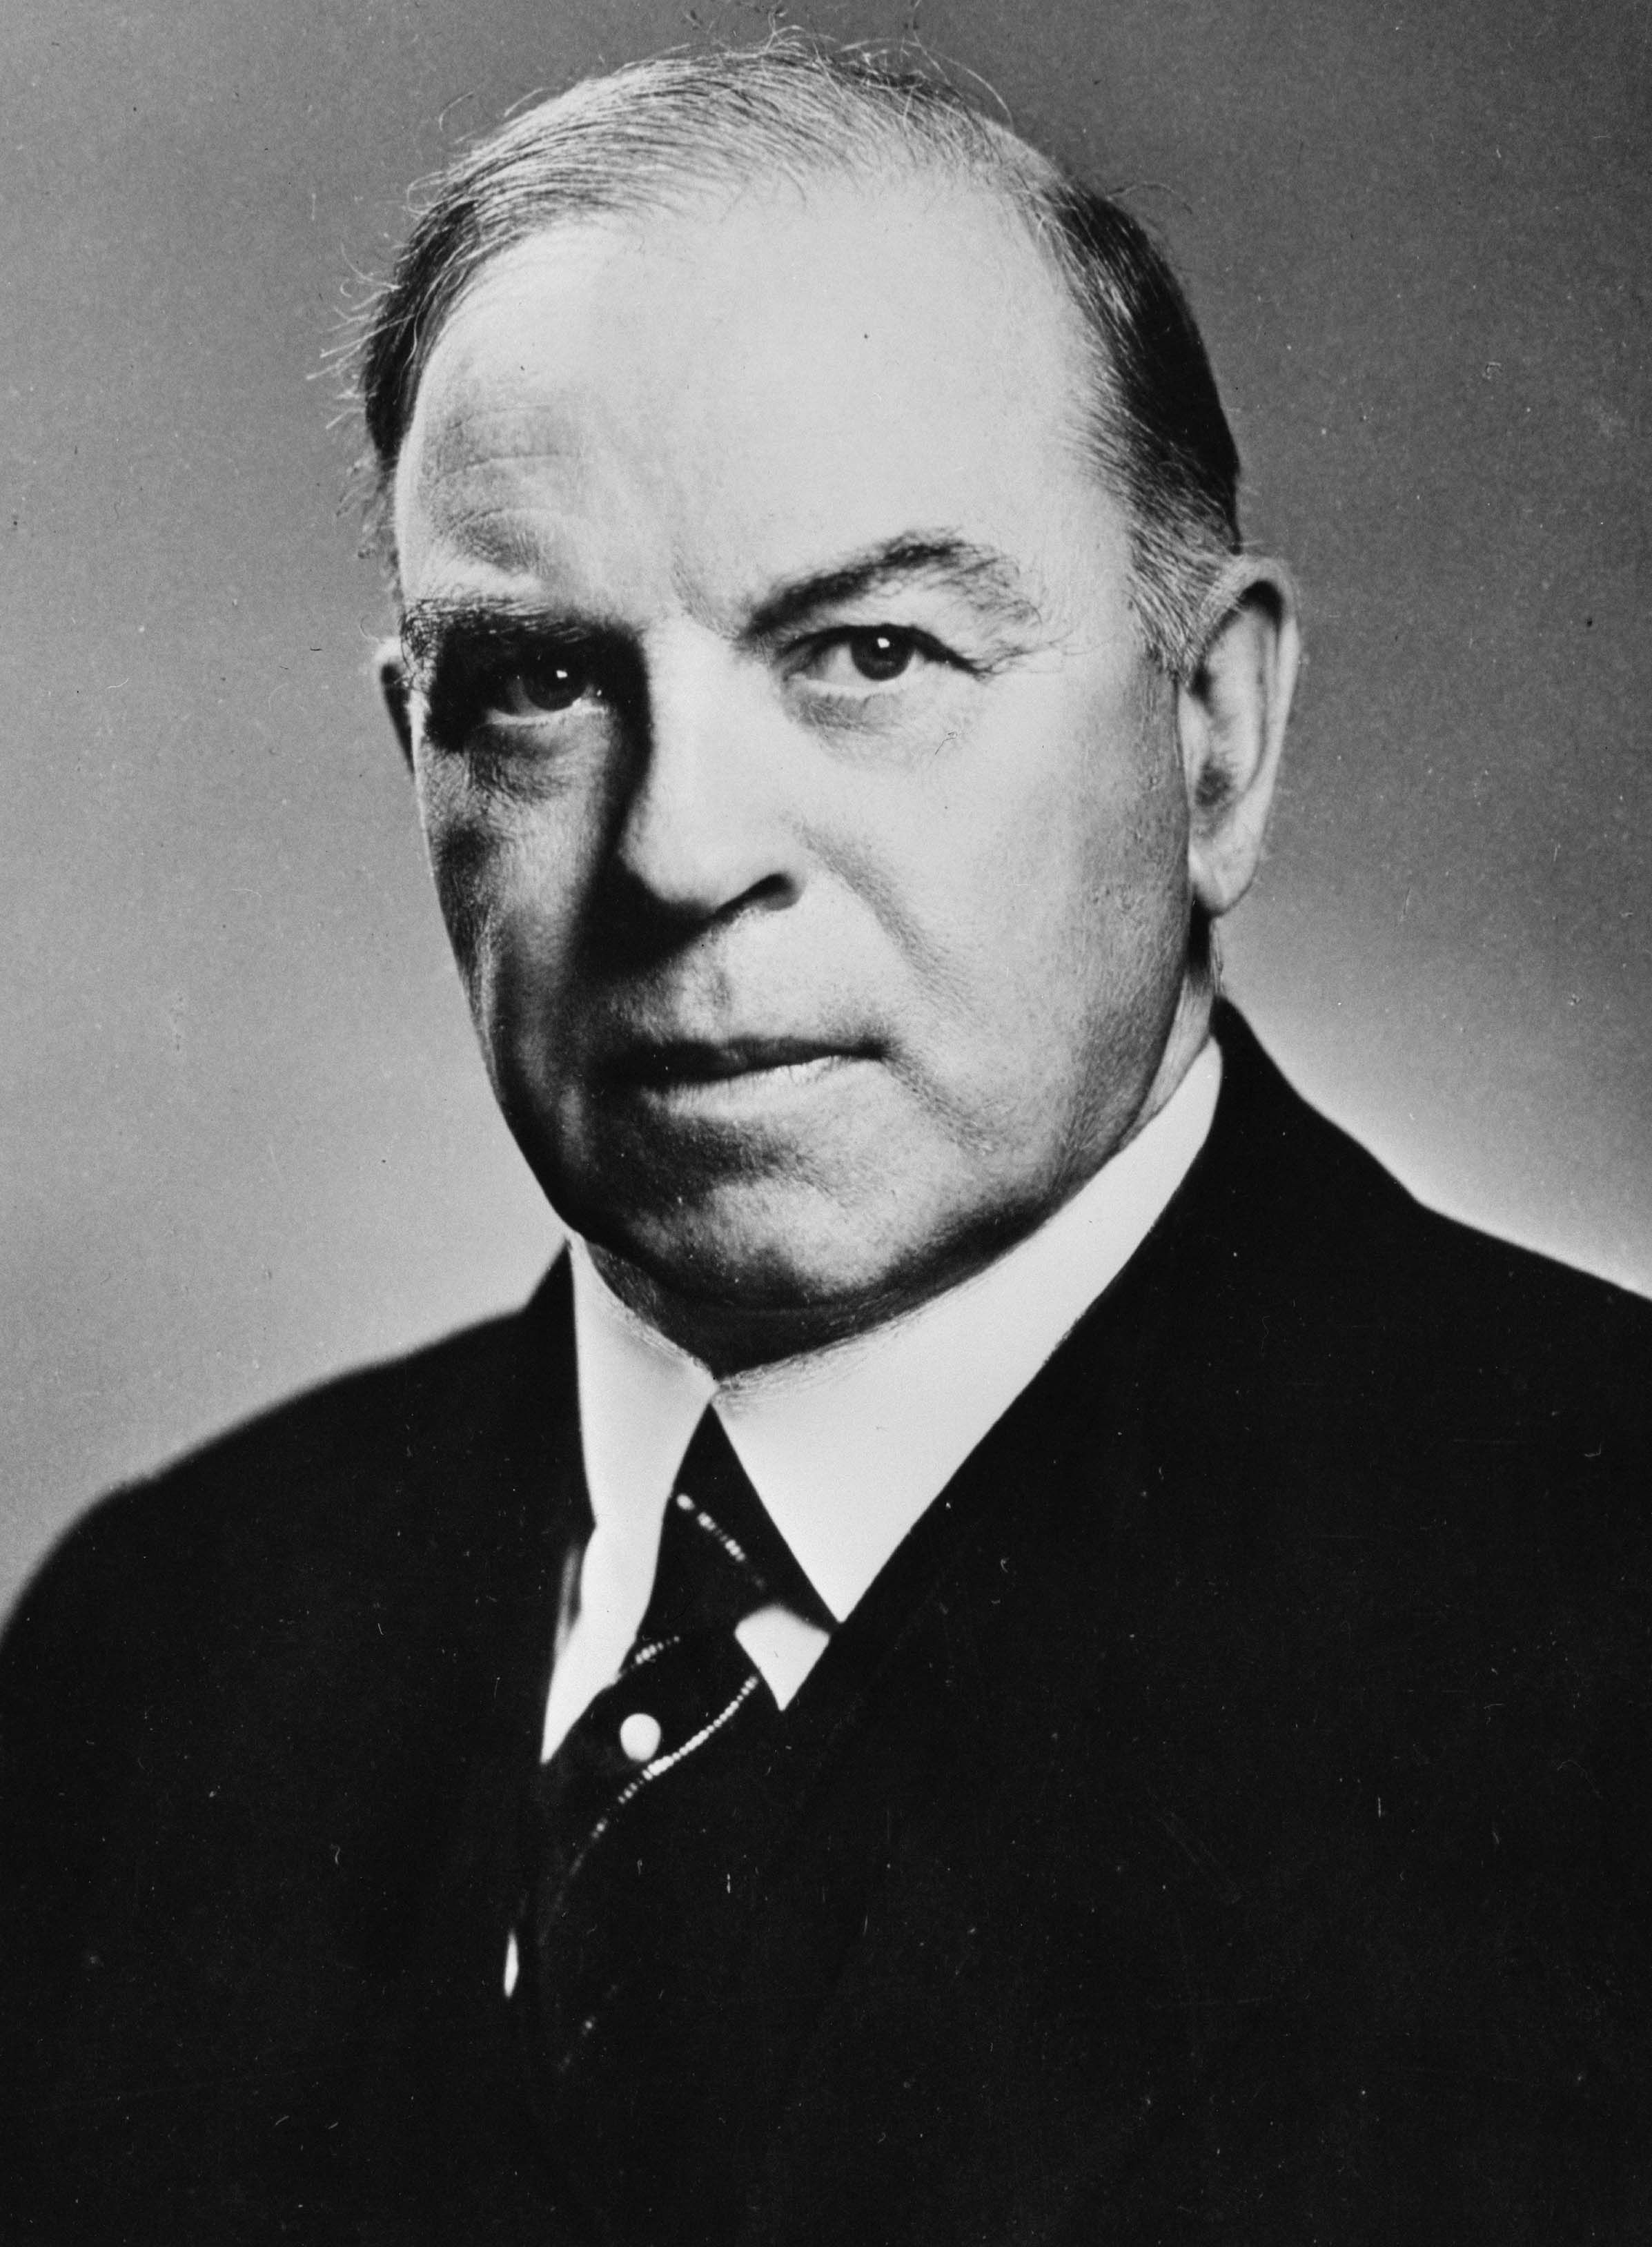 William Lyon Mackenzie King was the Prime Minister of